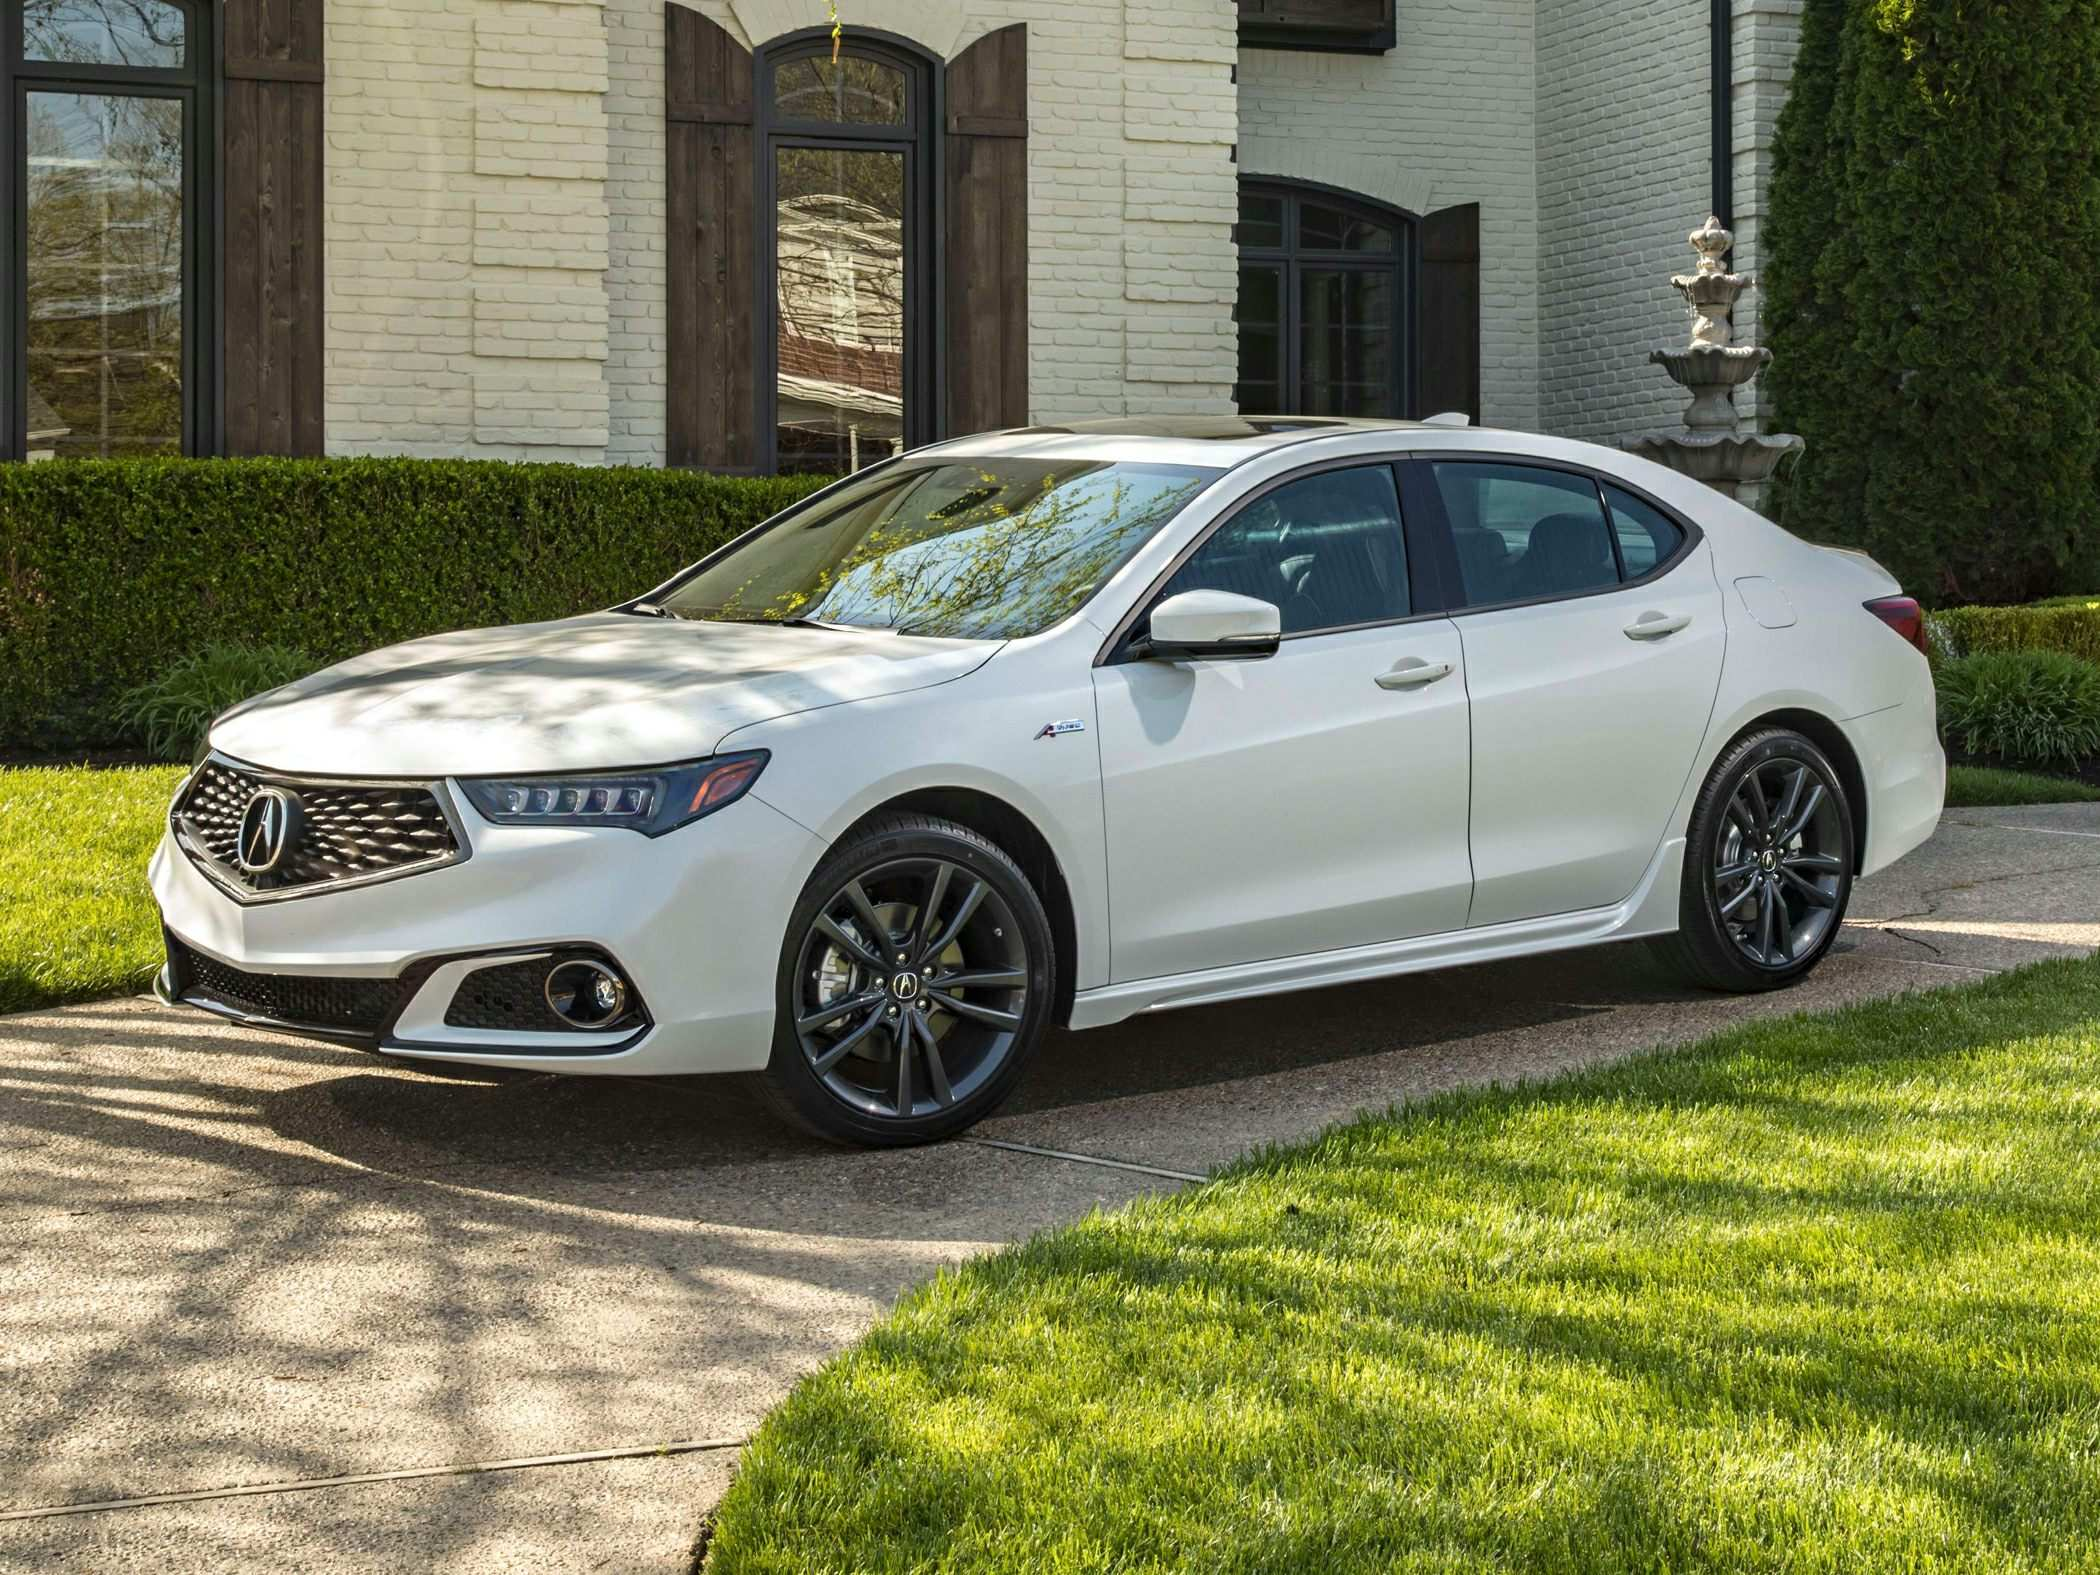 14 All New 2020 Acura Tlx Type S Horsepower First Drive